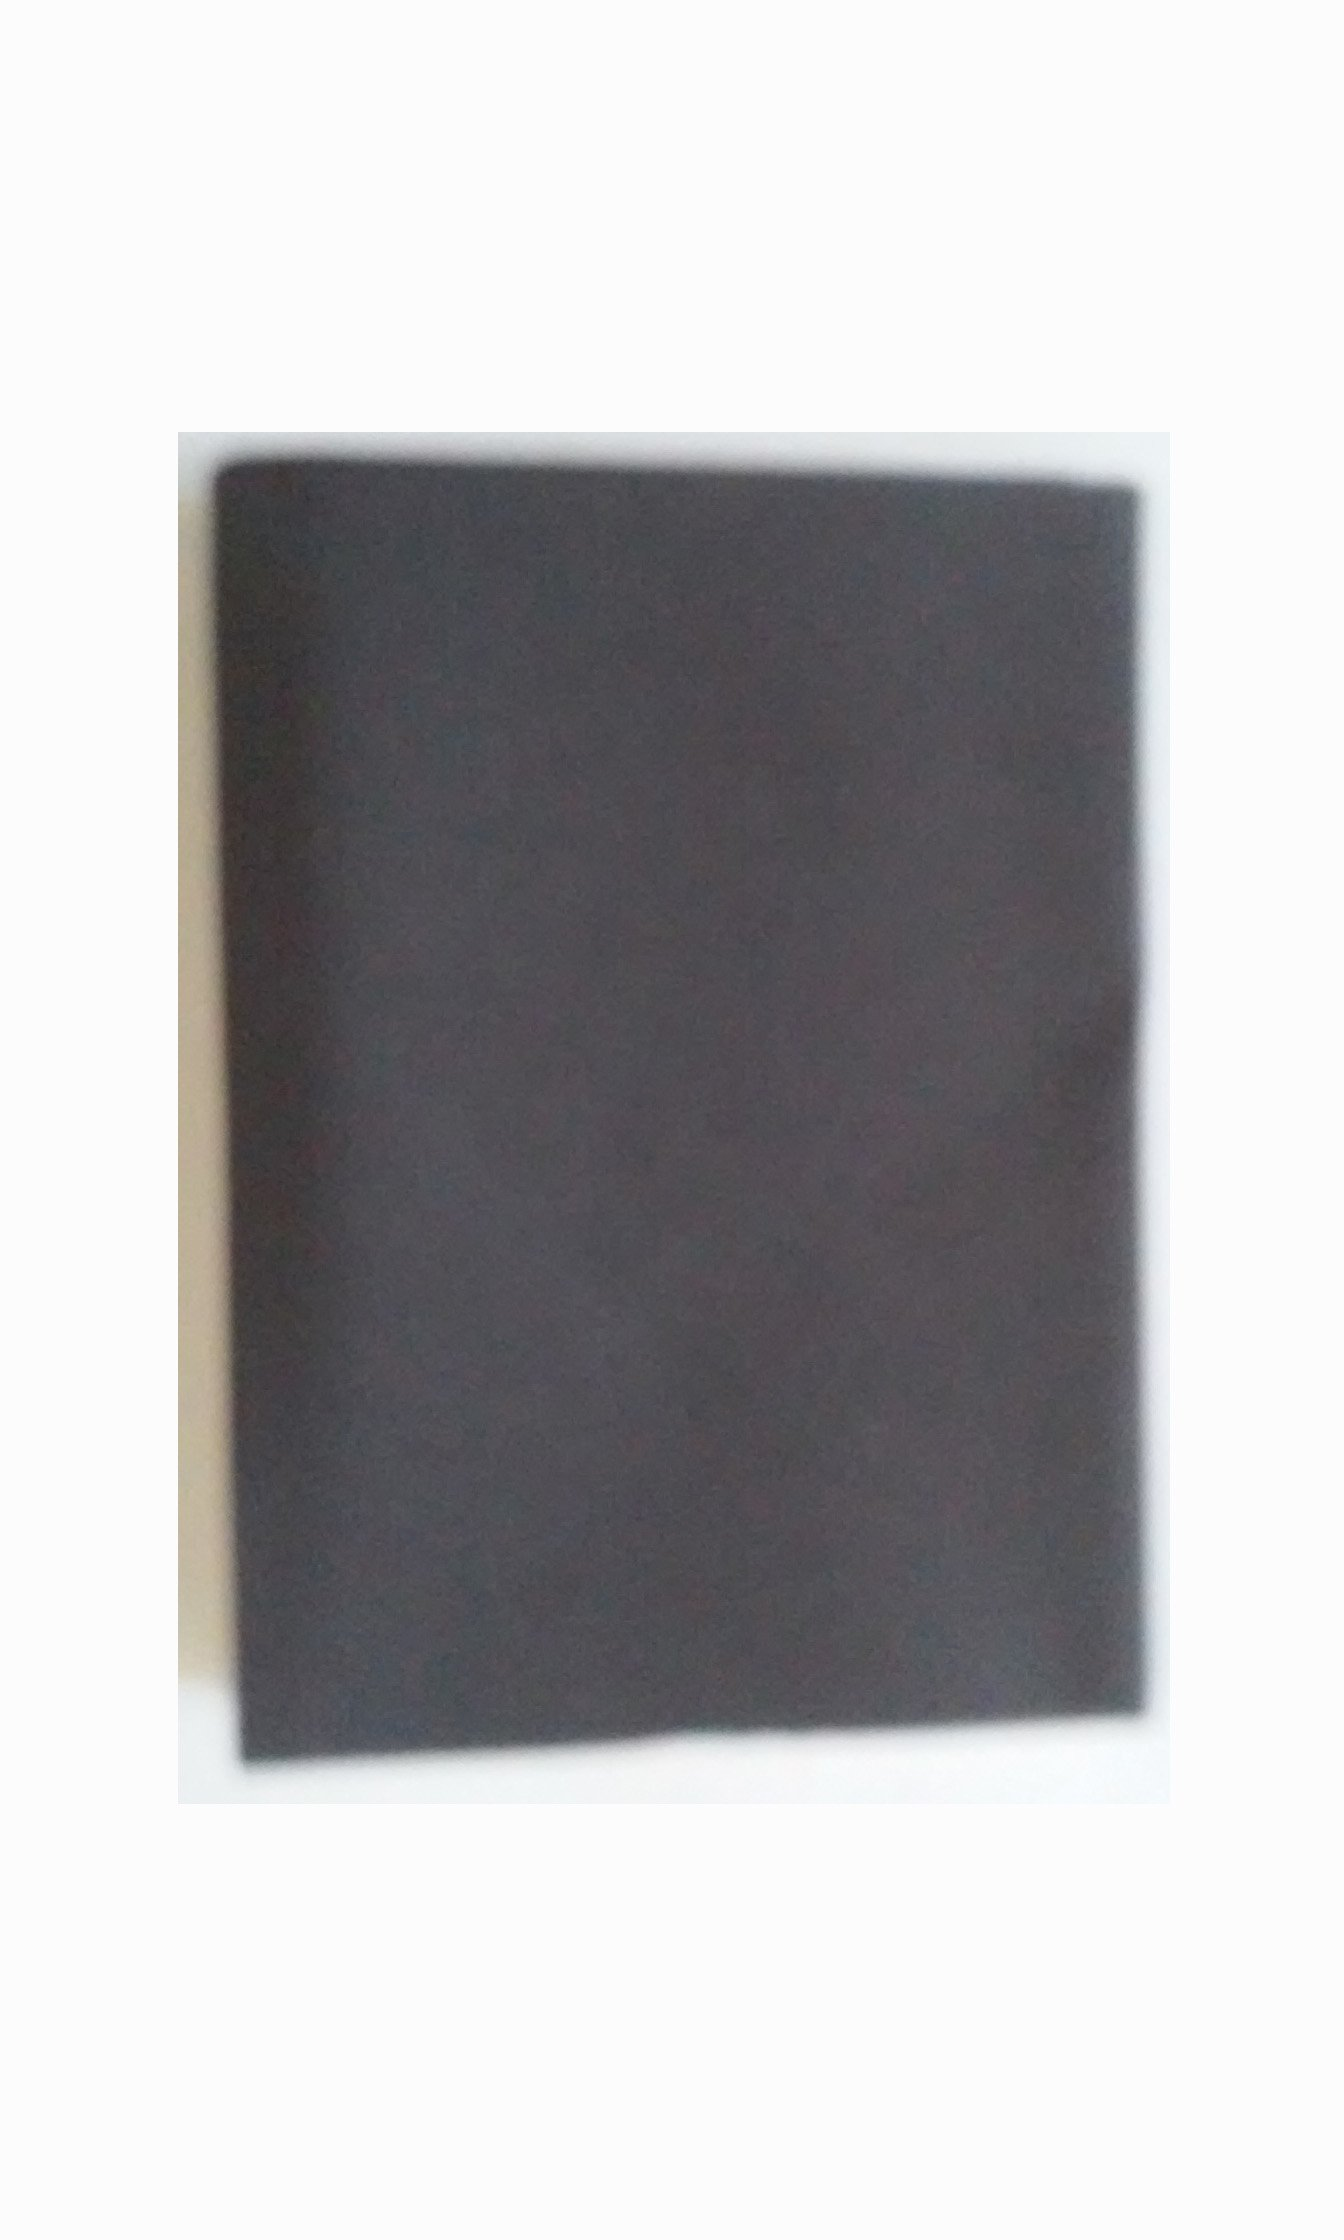 Made in Italy Inc. Address Book 4 7/8'' x 6 1/2'' A-Z Tabbed Black Thin Cardboard Cover